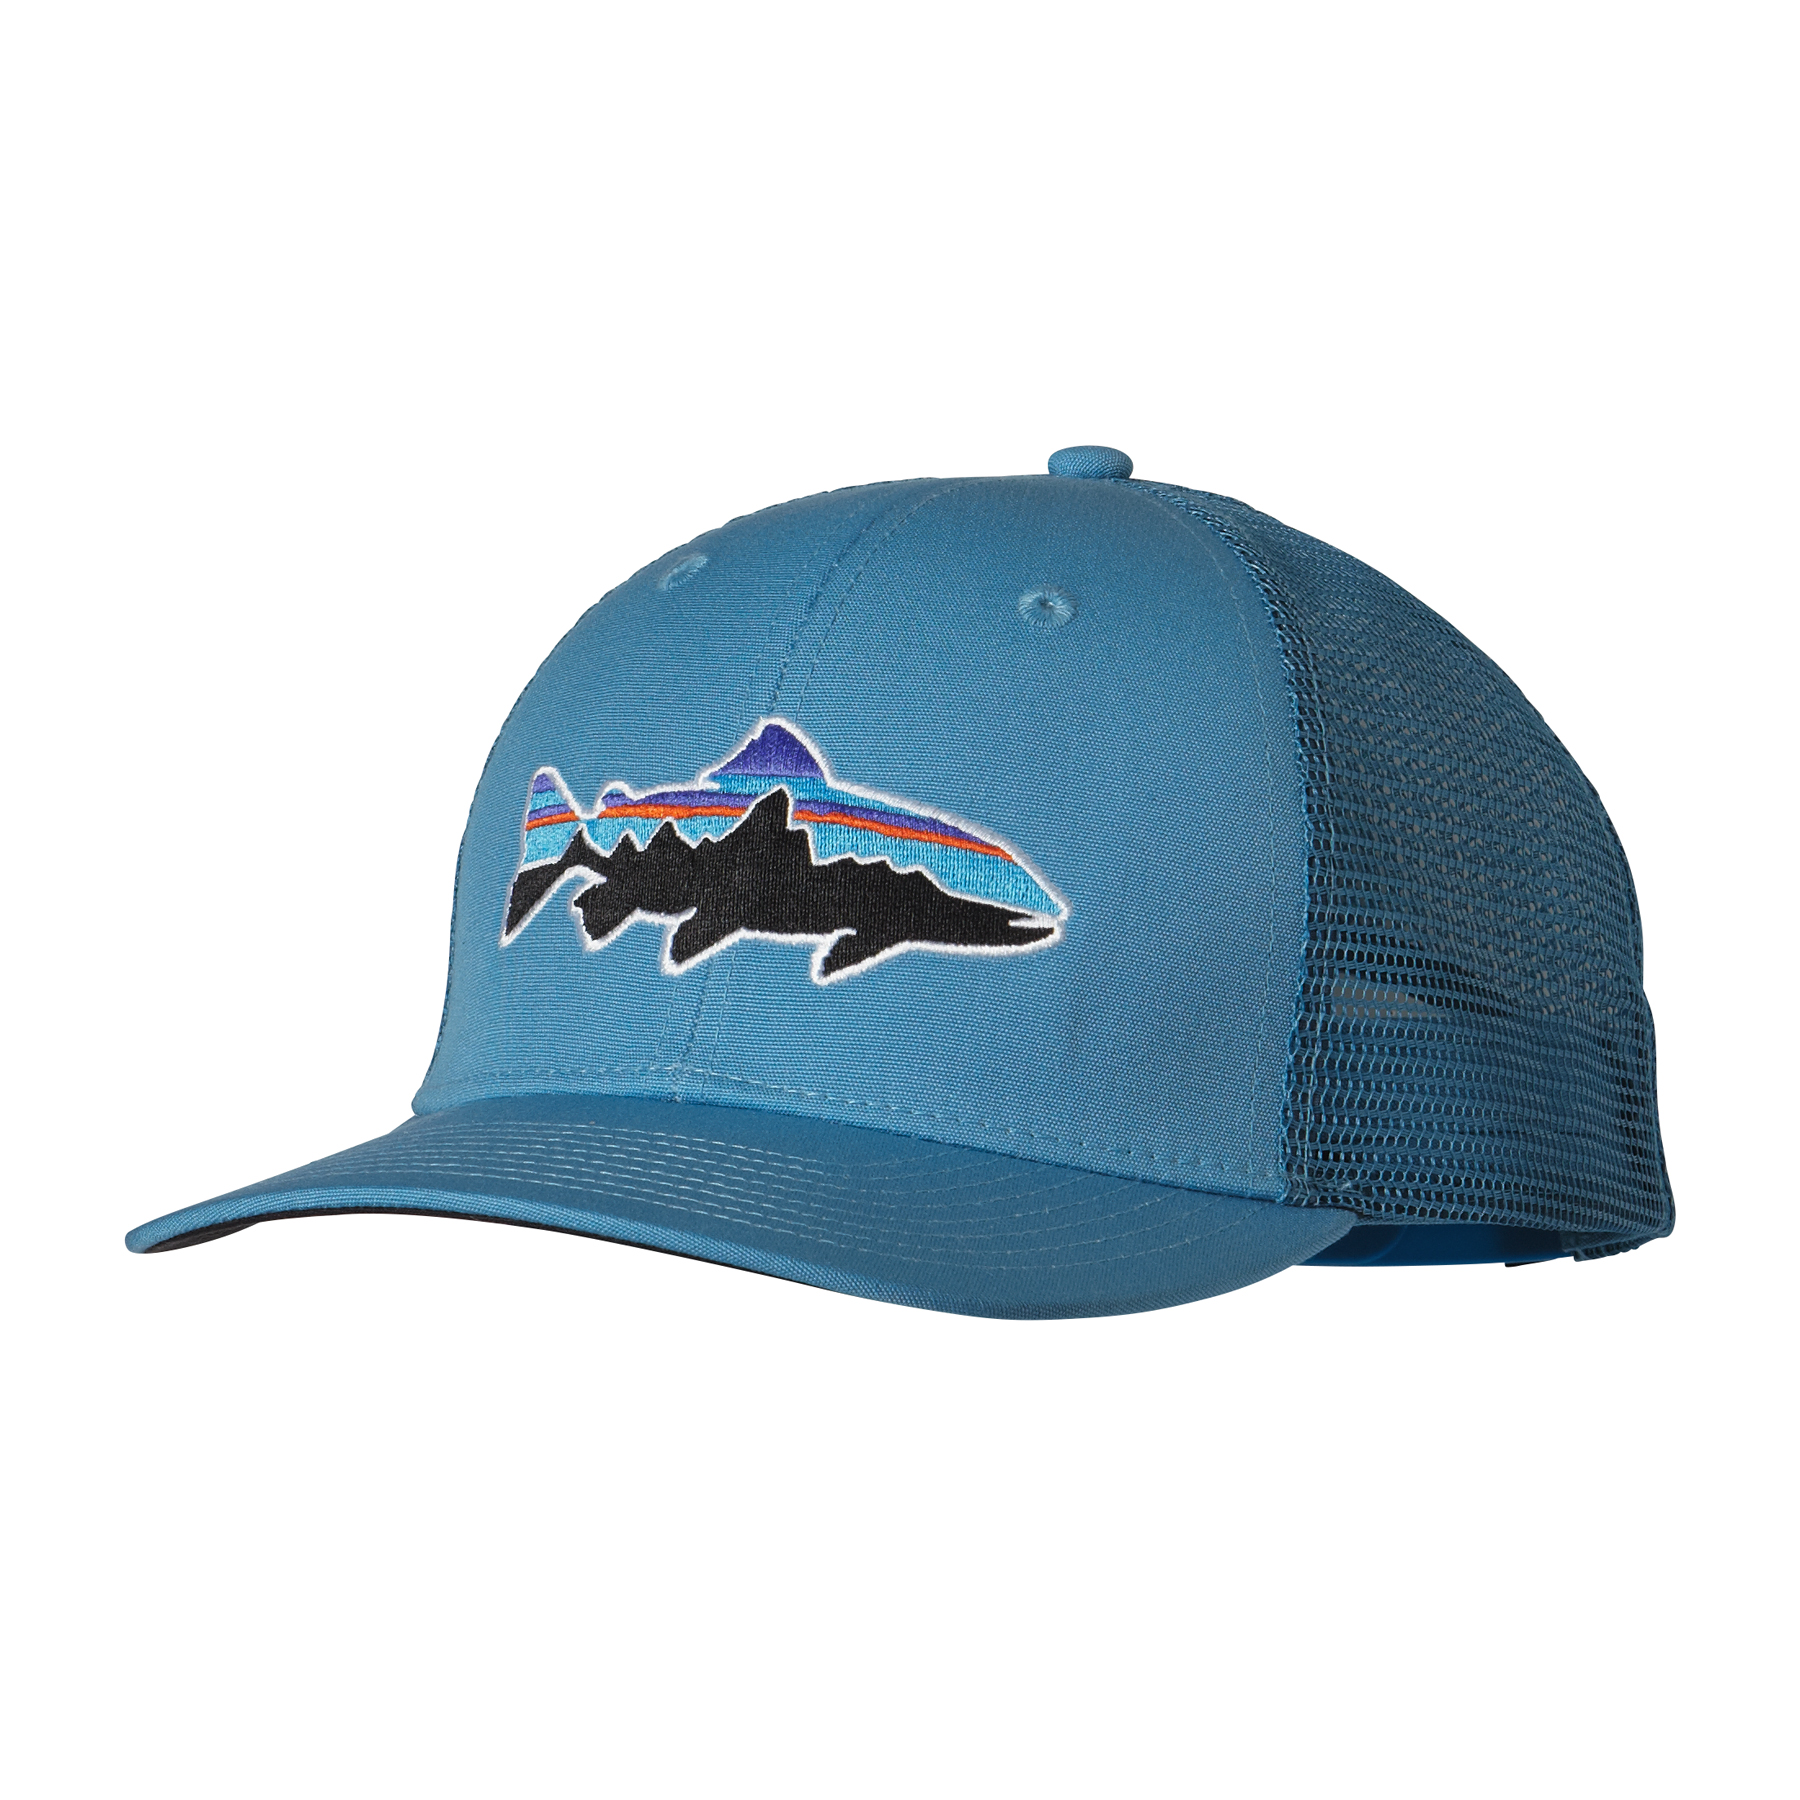 89fad14a4a6 Patagonia Fitz Roy Trout Trucker Hat – Glasgow Angling Centre